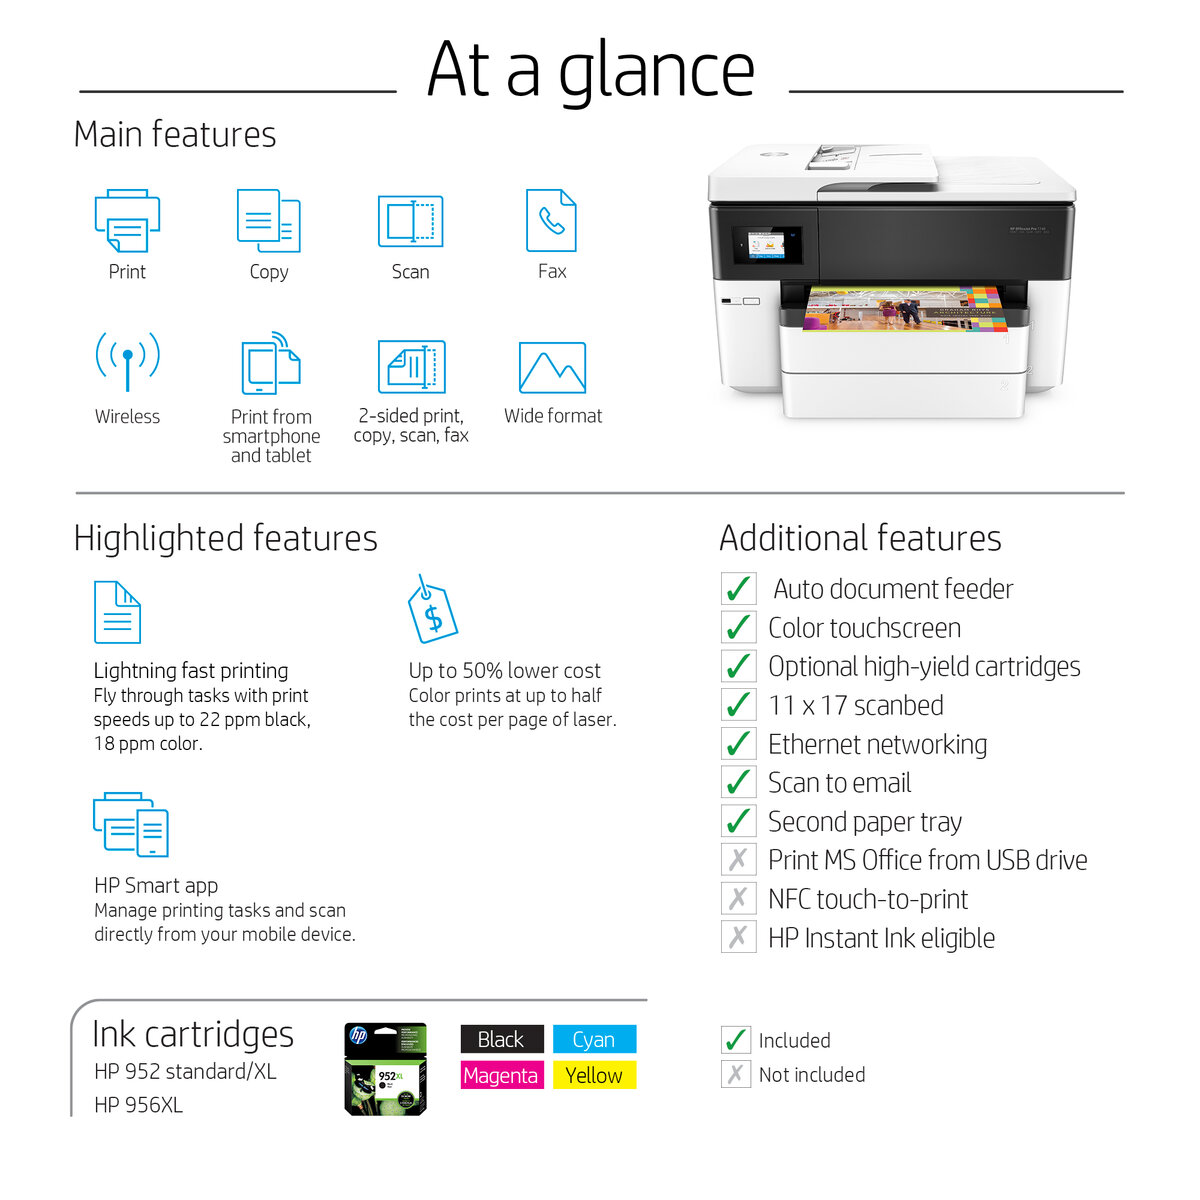 slide 1 of 9,show larger image, hp officejet pro 7740 wide format all-in-one printer